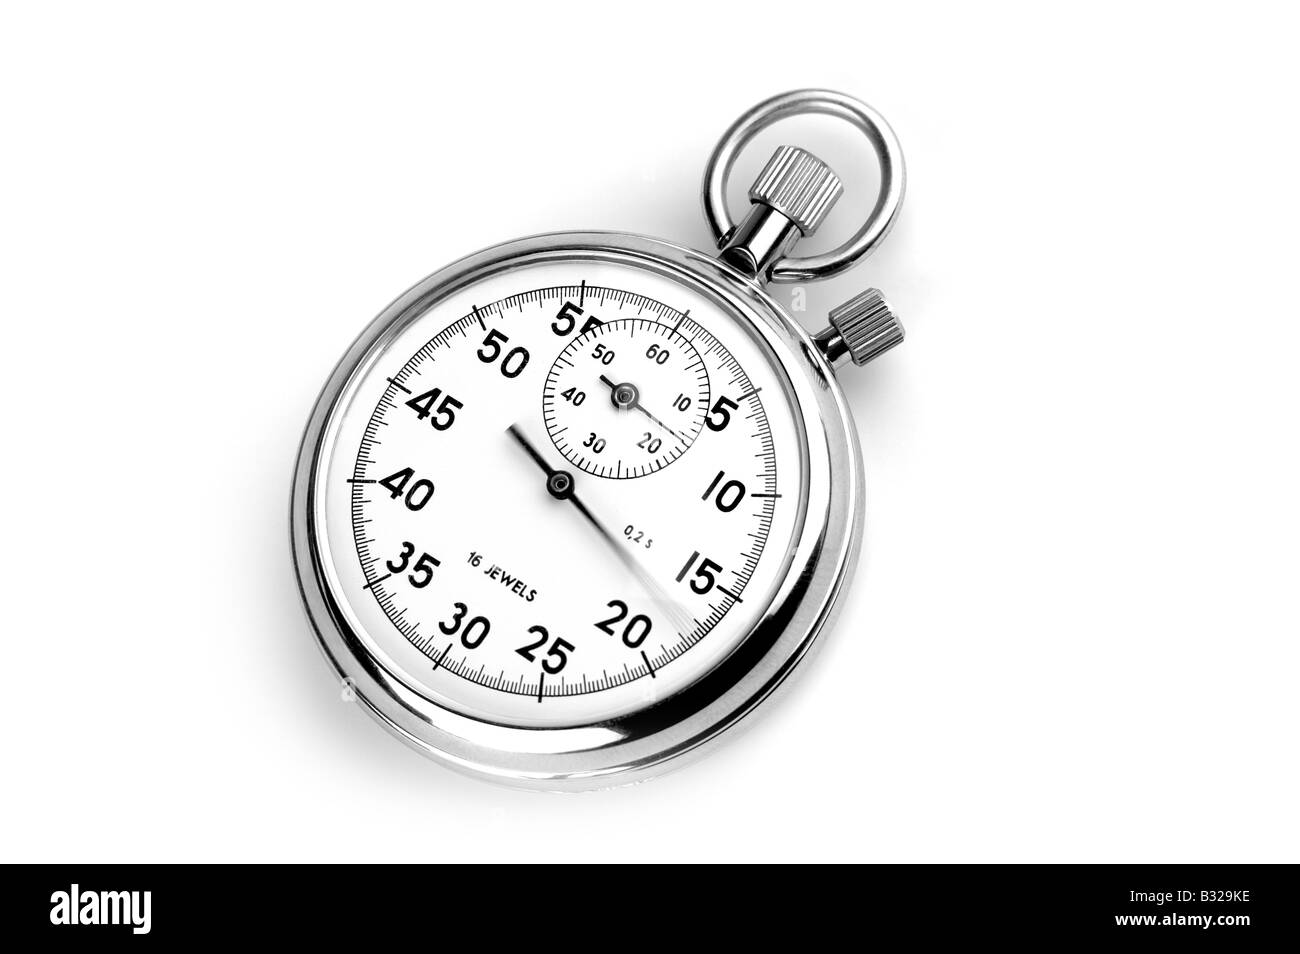 ANALOGUE STOP WATCH CUT OUT - Stock Image